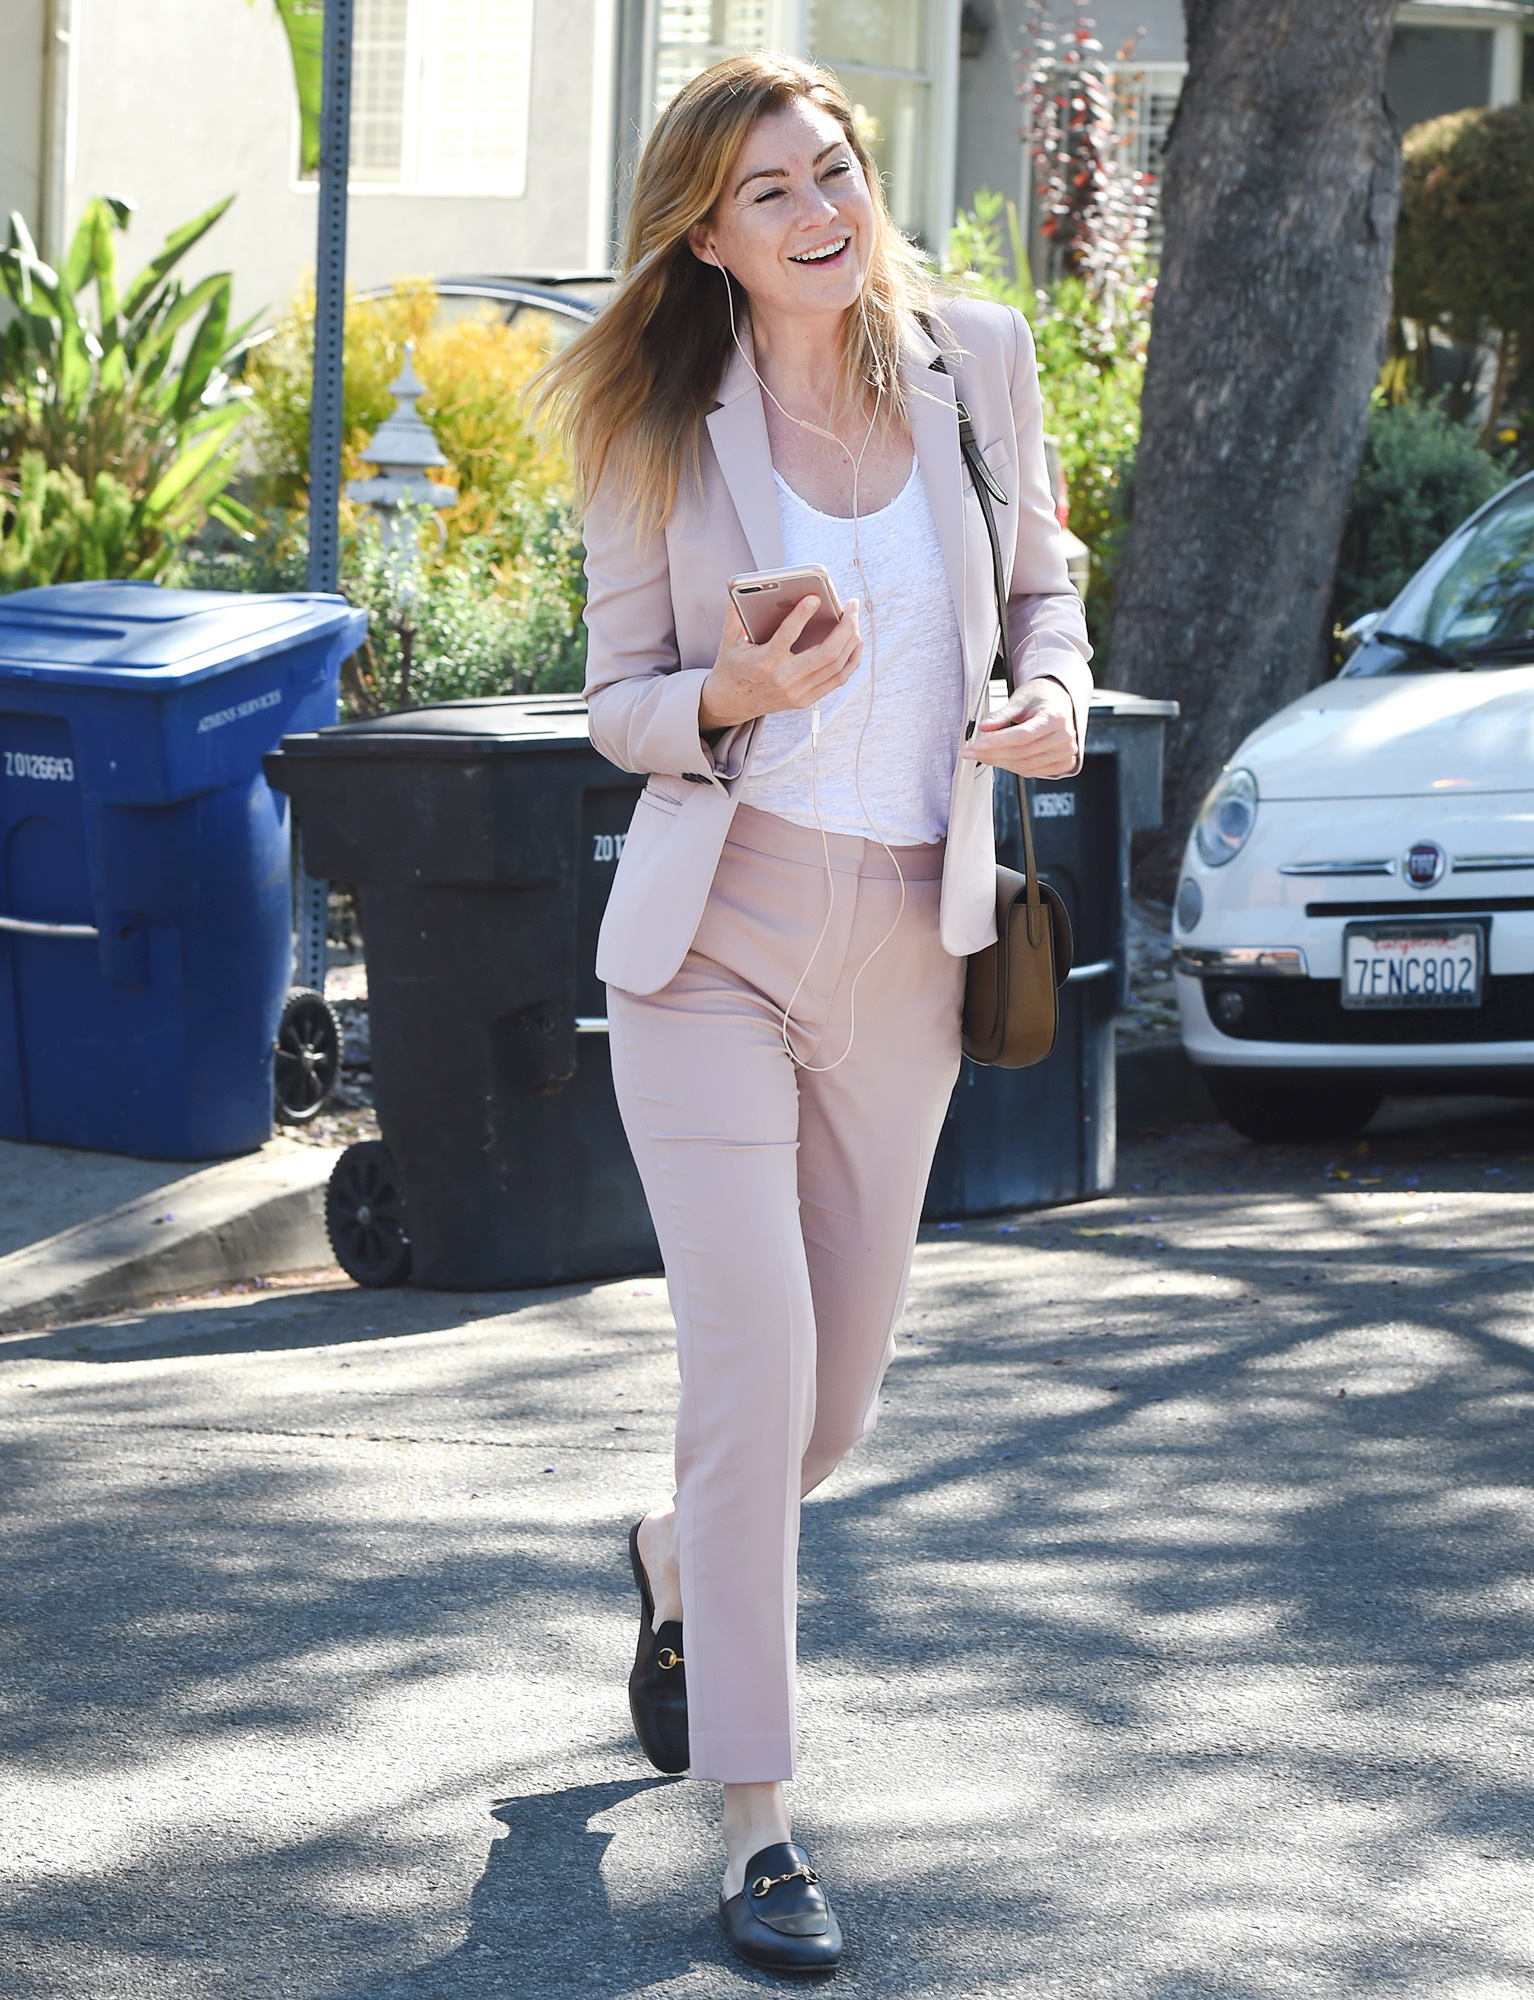 EXCLUSIVE: Ellen Pompeo wears a light pink business suit as she leaves a beauty salon while talking on her cellphone